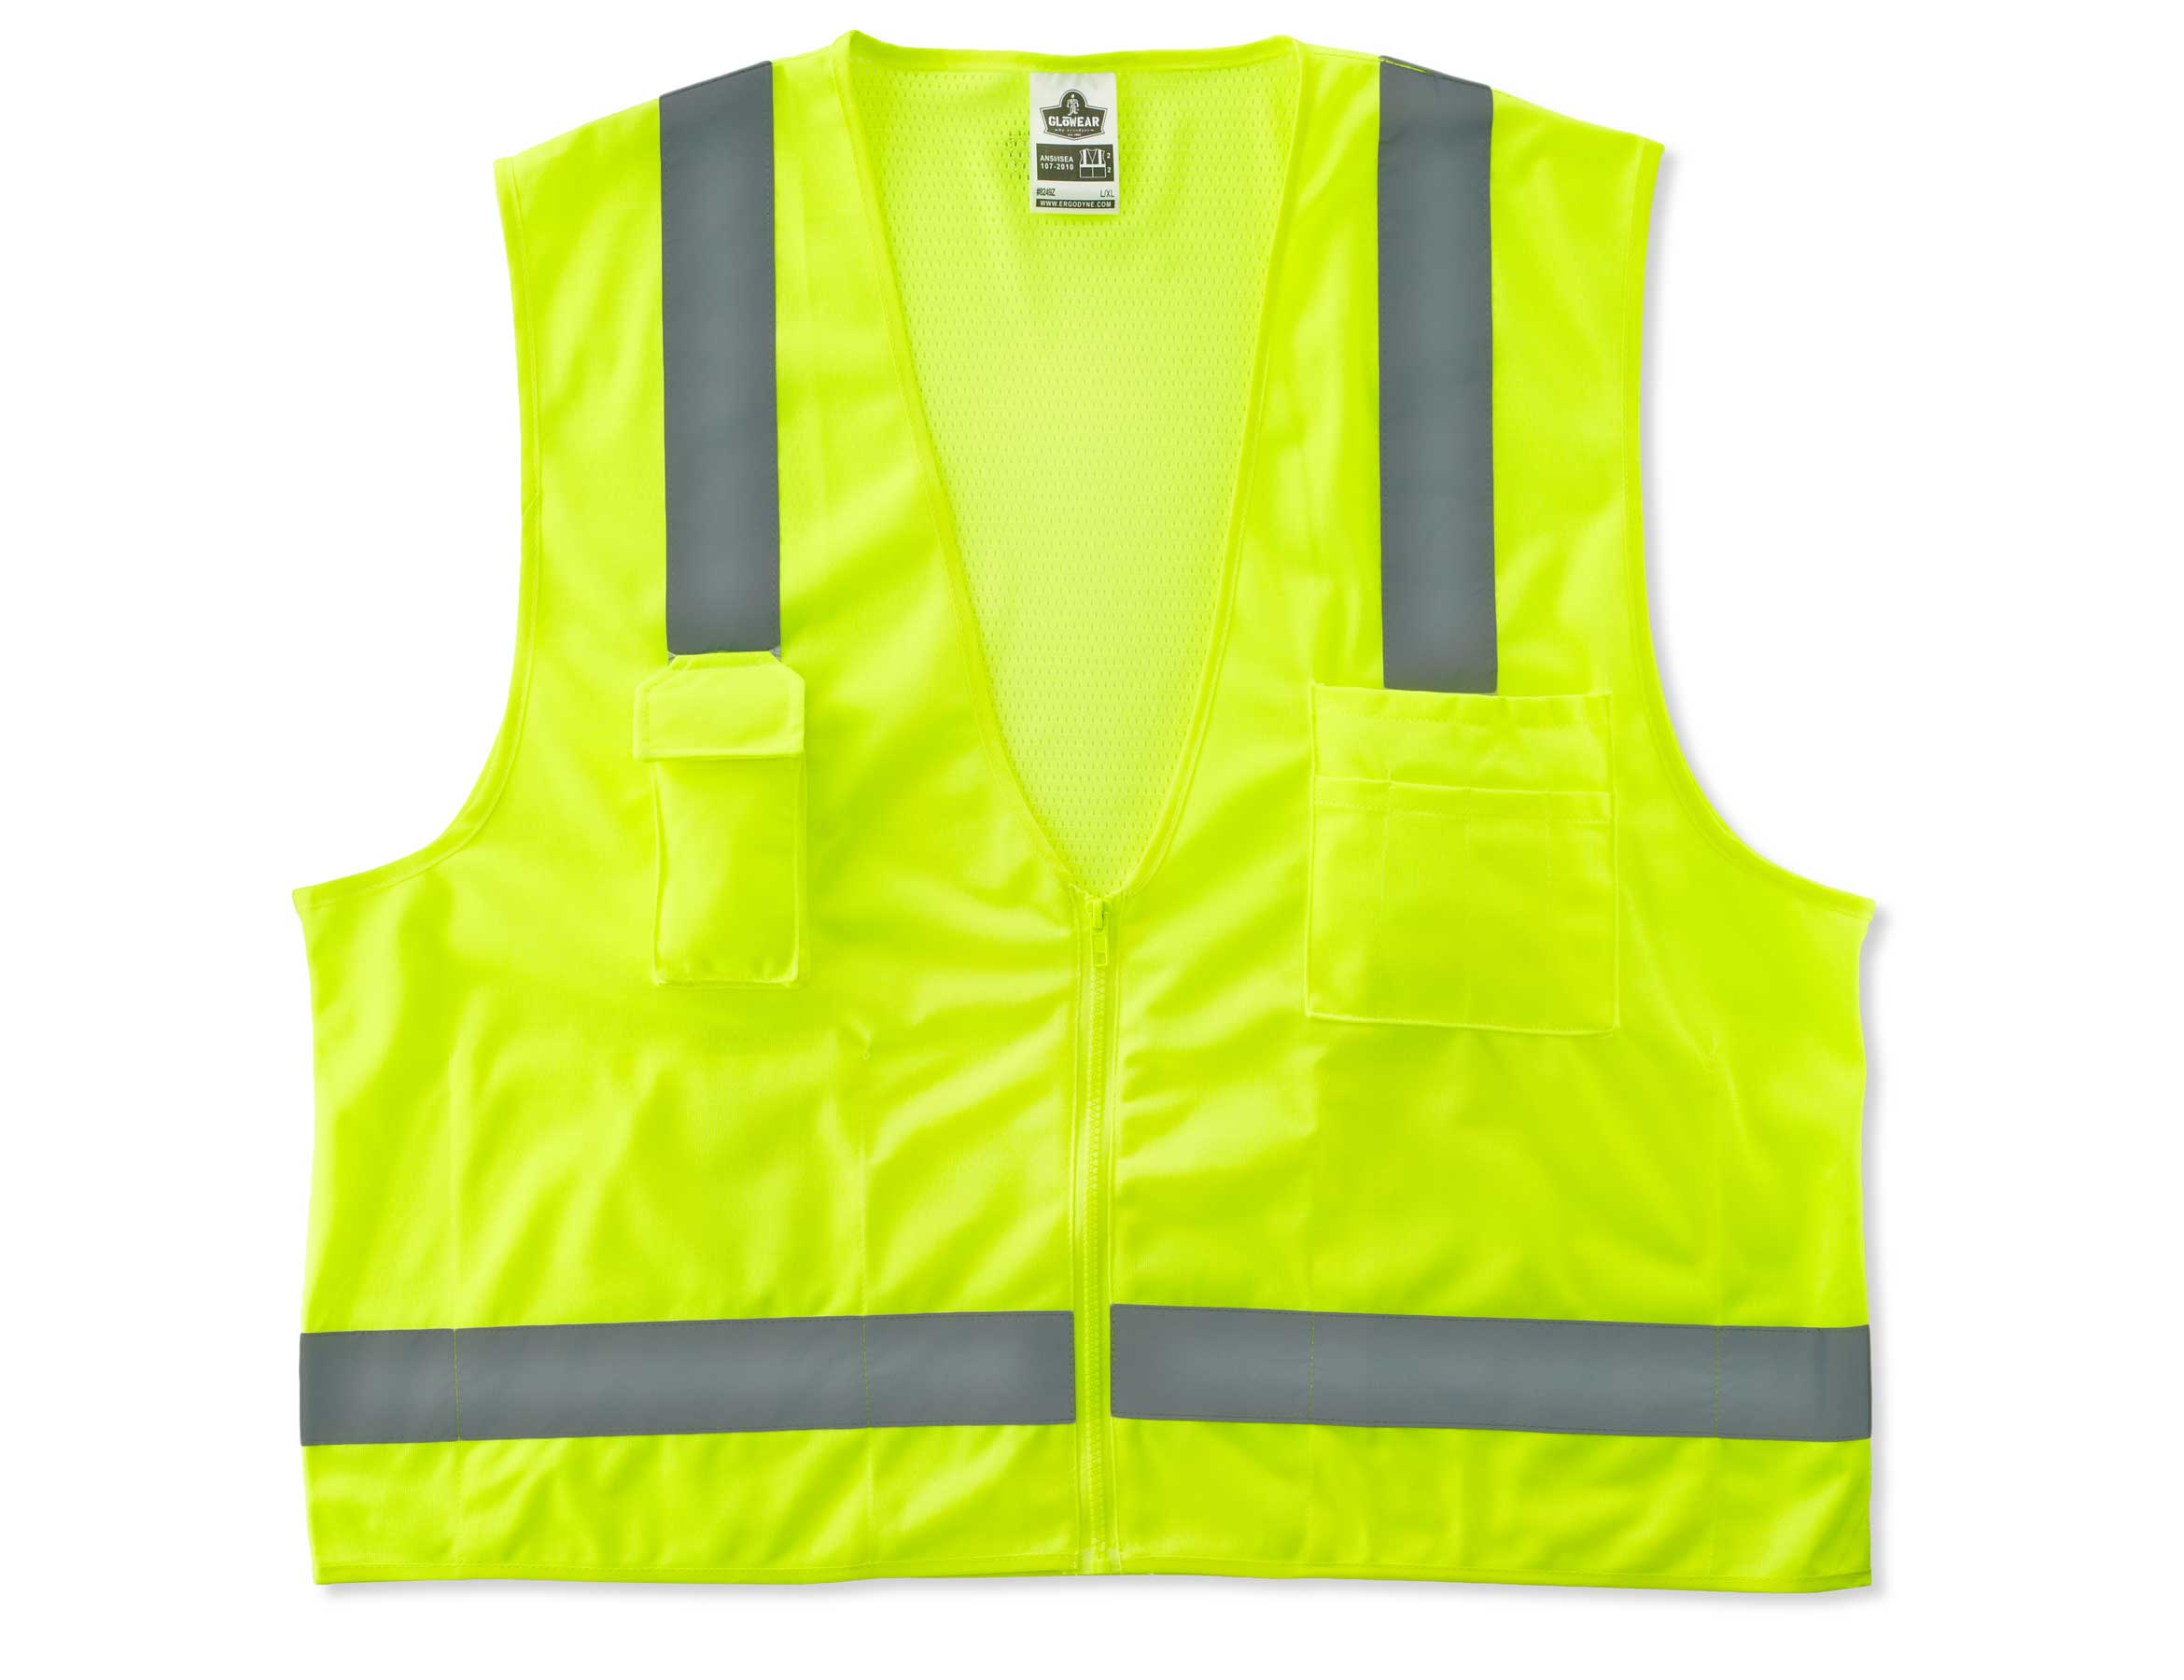 Ergodyne Class 2 ANSI-Compliant Economy Surveyor's Vest - Solid front, mesh back, Zipper closure and pockets - 2XL/3XL, Lime